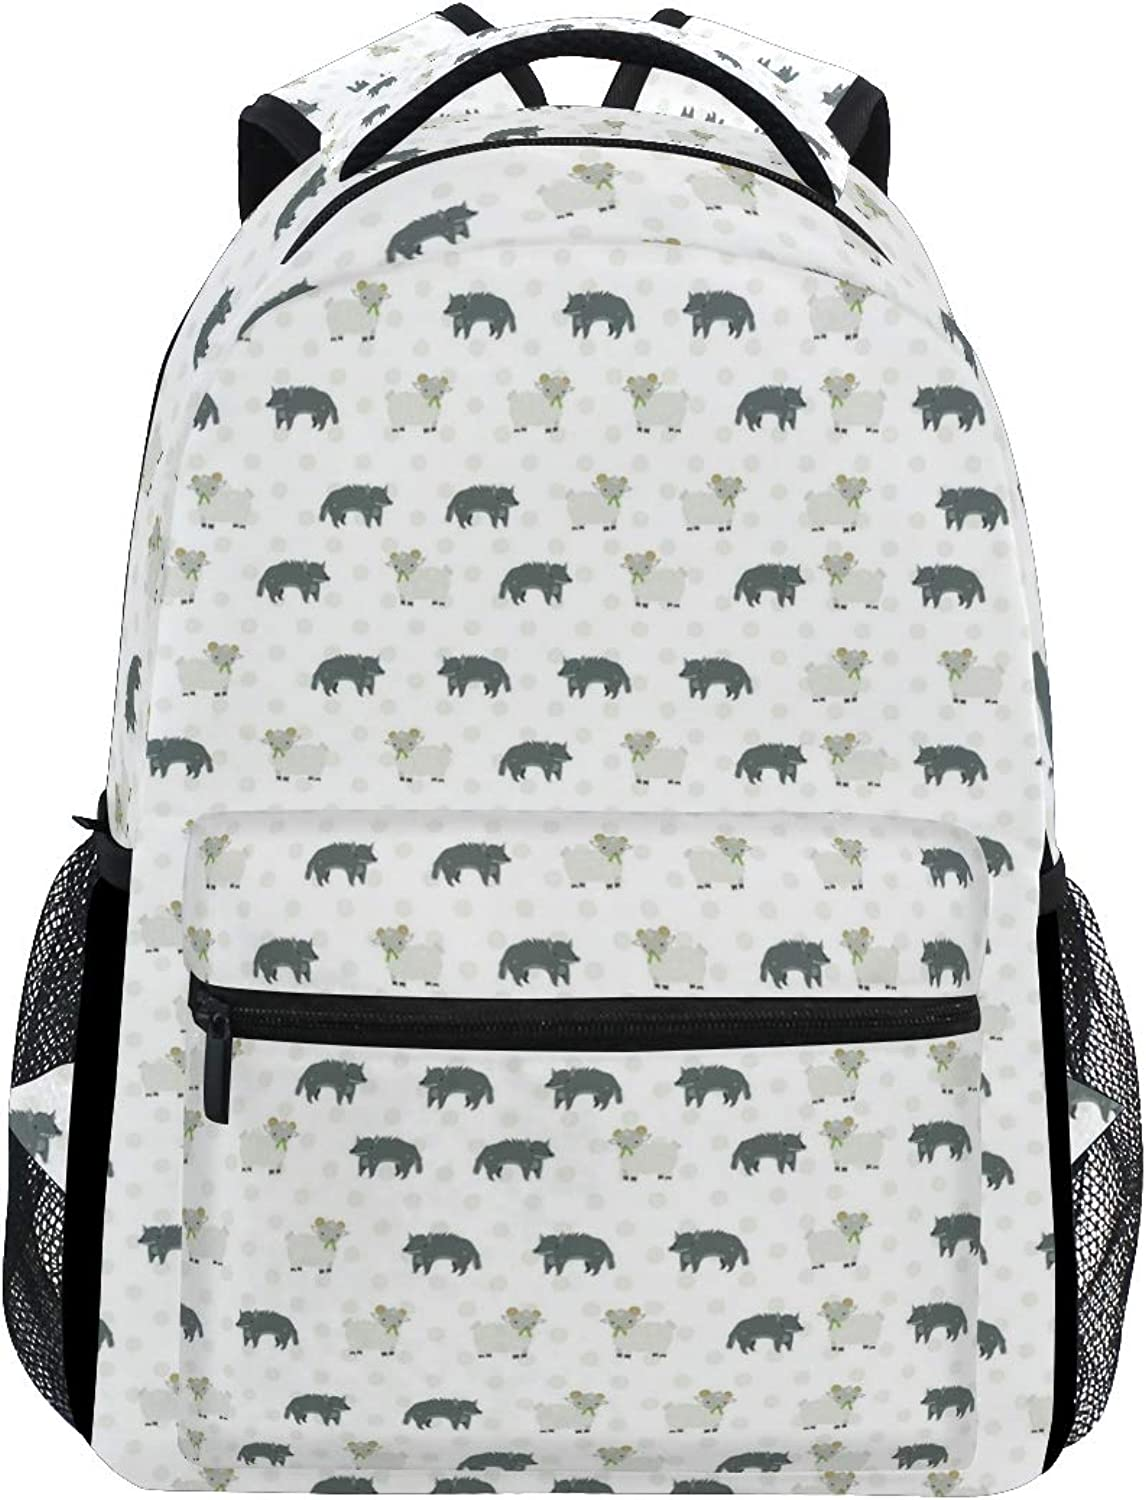 Big Wolf and Little Sheep Large Backpack Travel Outdoor Sports Laptop Backpack for Women & Men College School Water Resistant